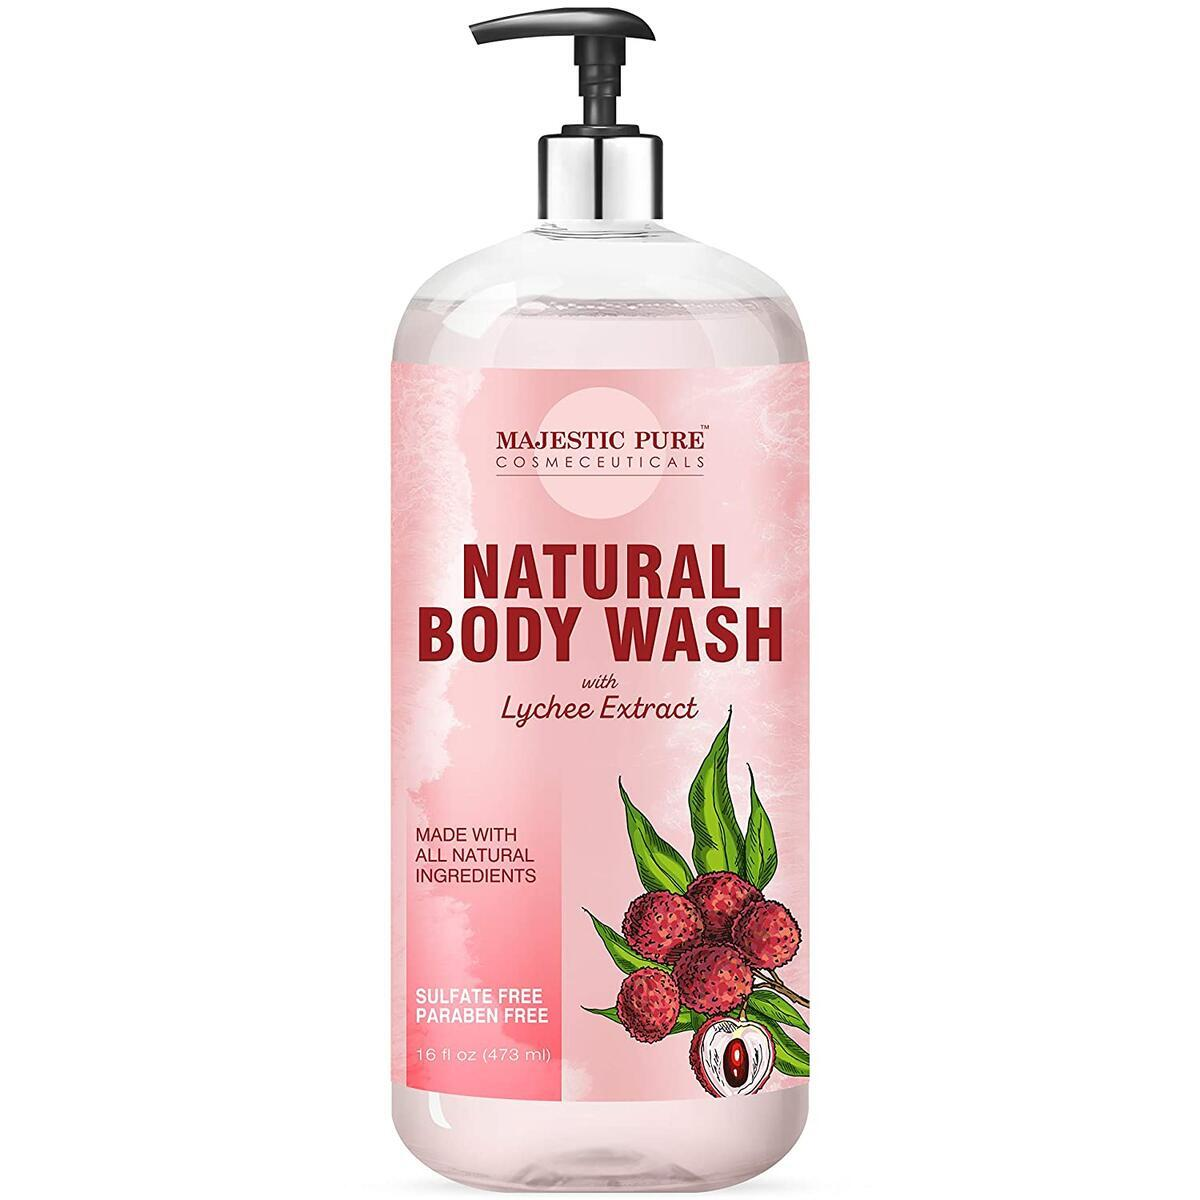 All Natural Body Wash with Lychee Extract - for Body, Face and Hand - Liquid Soap, Sulfate Free & Paraben Free, for Women and Men - 16 fl oz